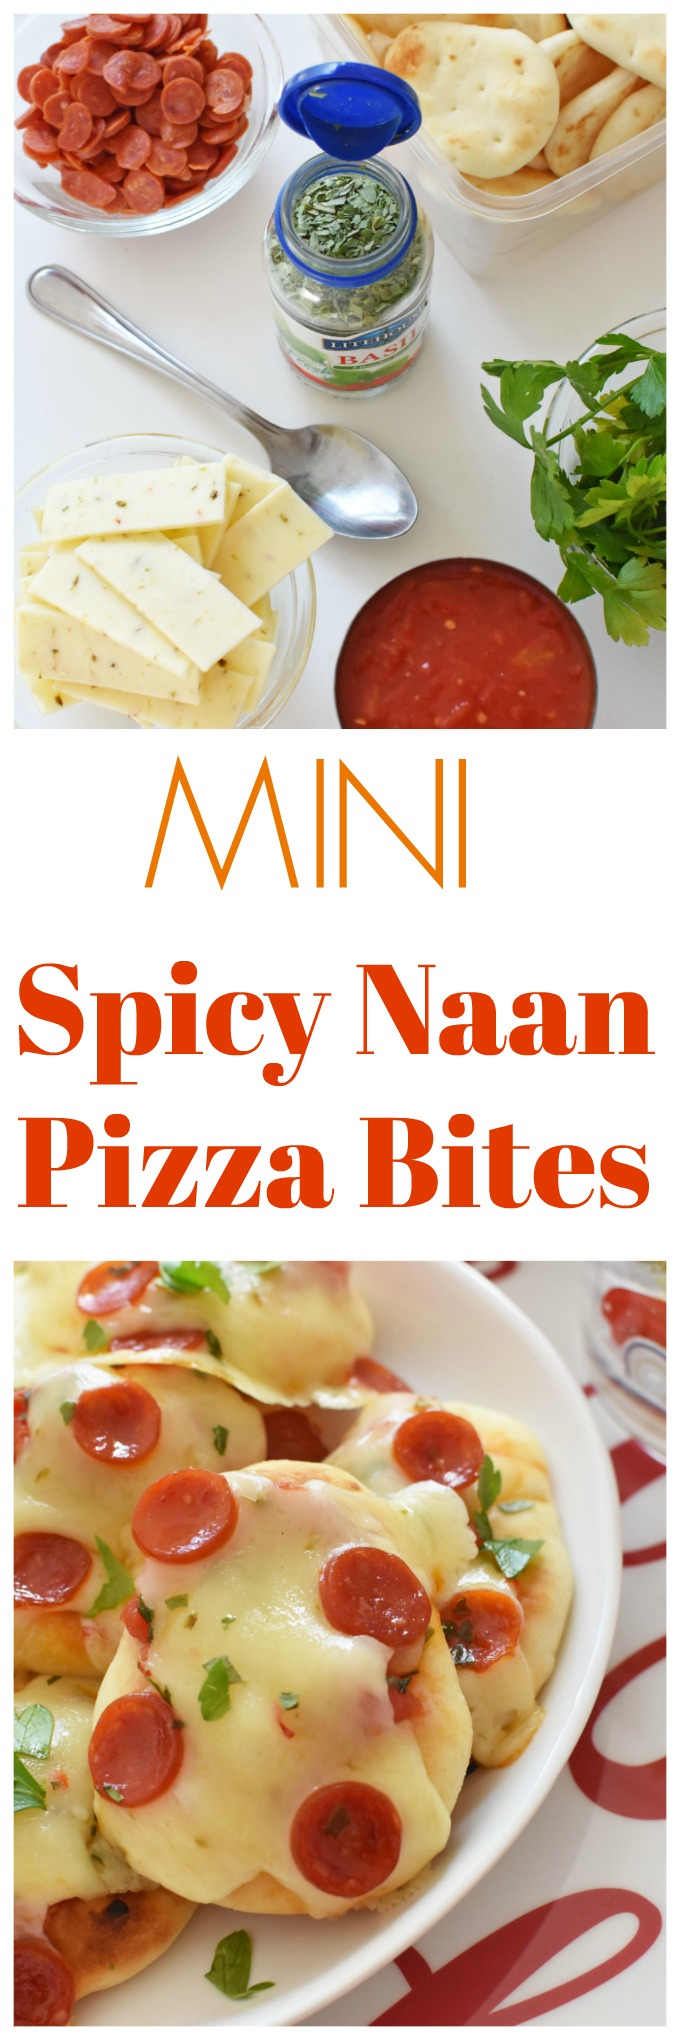 Mini Spicy Naan Pizza Bites. These little bit-sized naan are topped with Hunt's Diced tomatoes, pepperjack cheese, herbs, and pepperoni. Come see how they bake up to perfection and get the printable recipe!